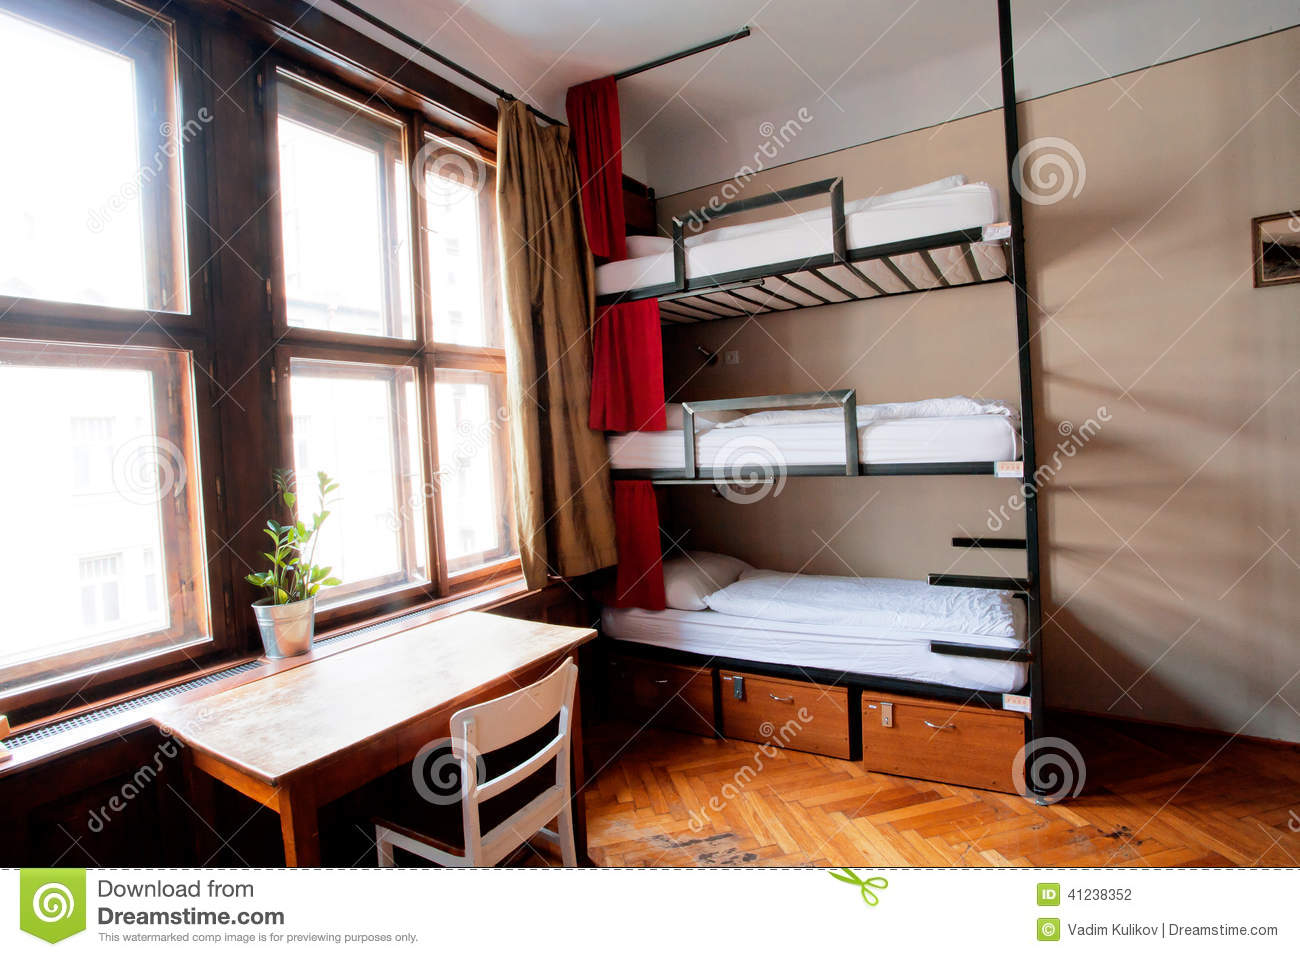 Dorm Room Of Cheap Hostel With Level Beds Stock Photo